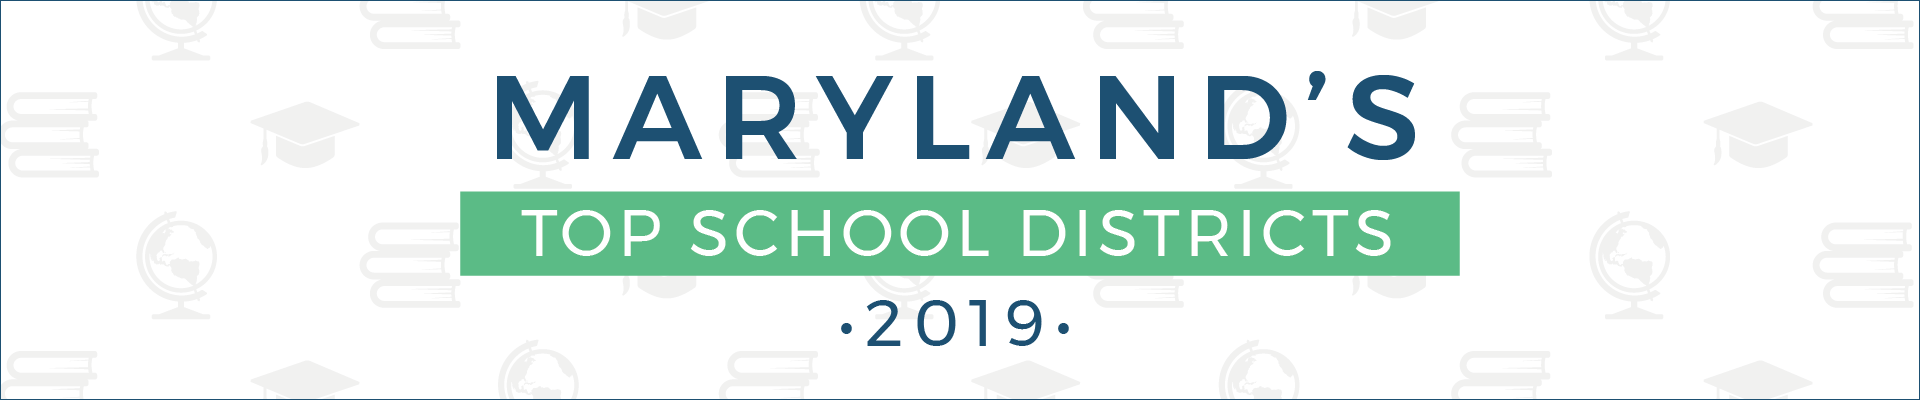 top school districts, 2019 - maryland - banner